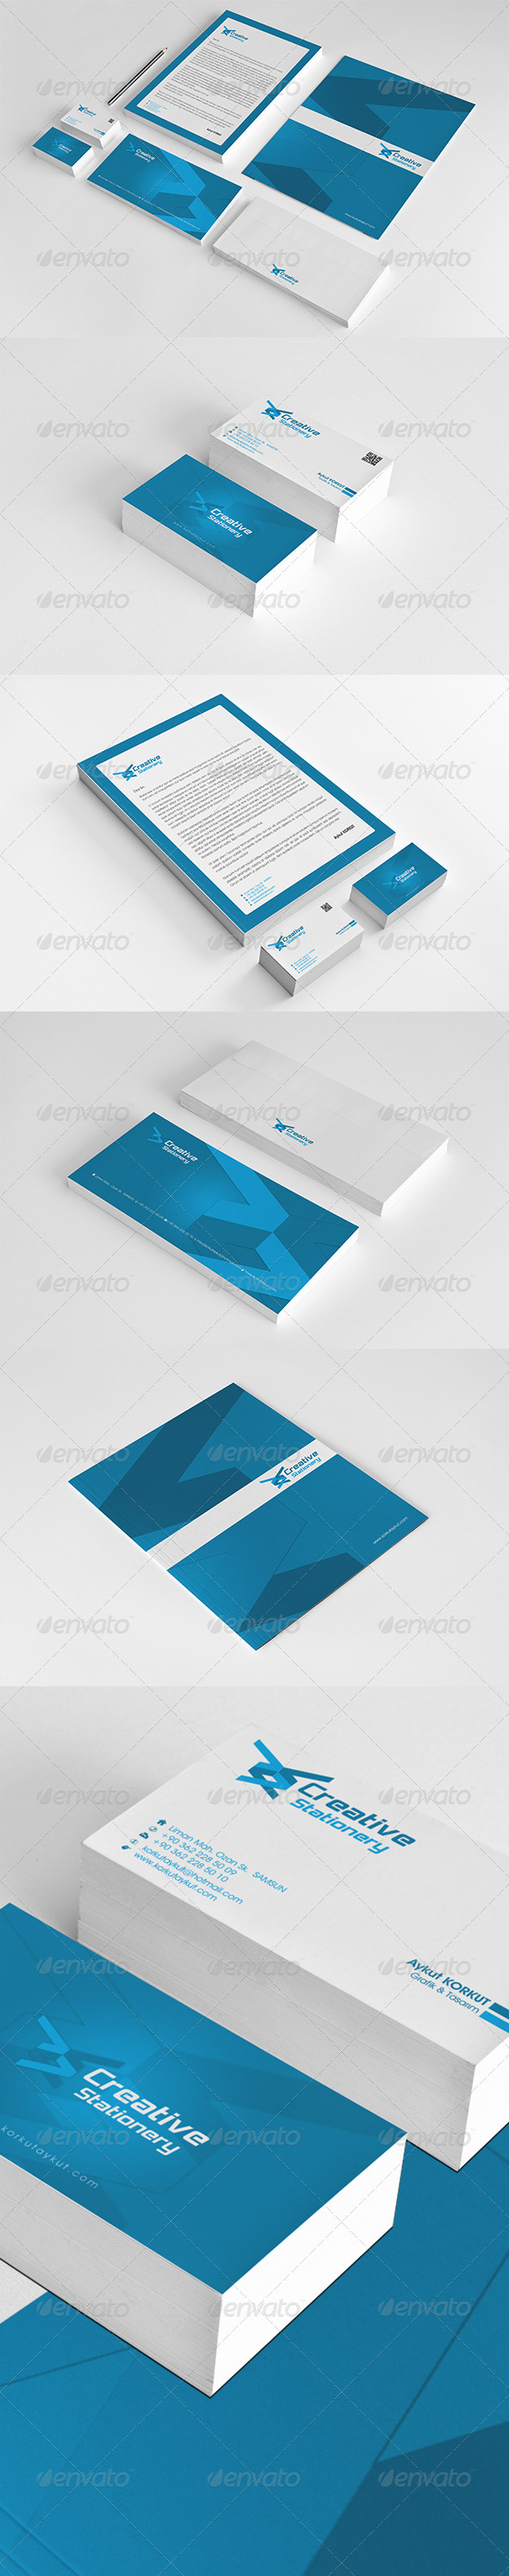 Creative Corporate Identity Package  - Stationery Print Templates